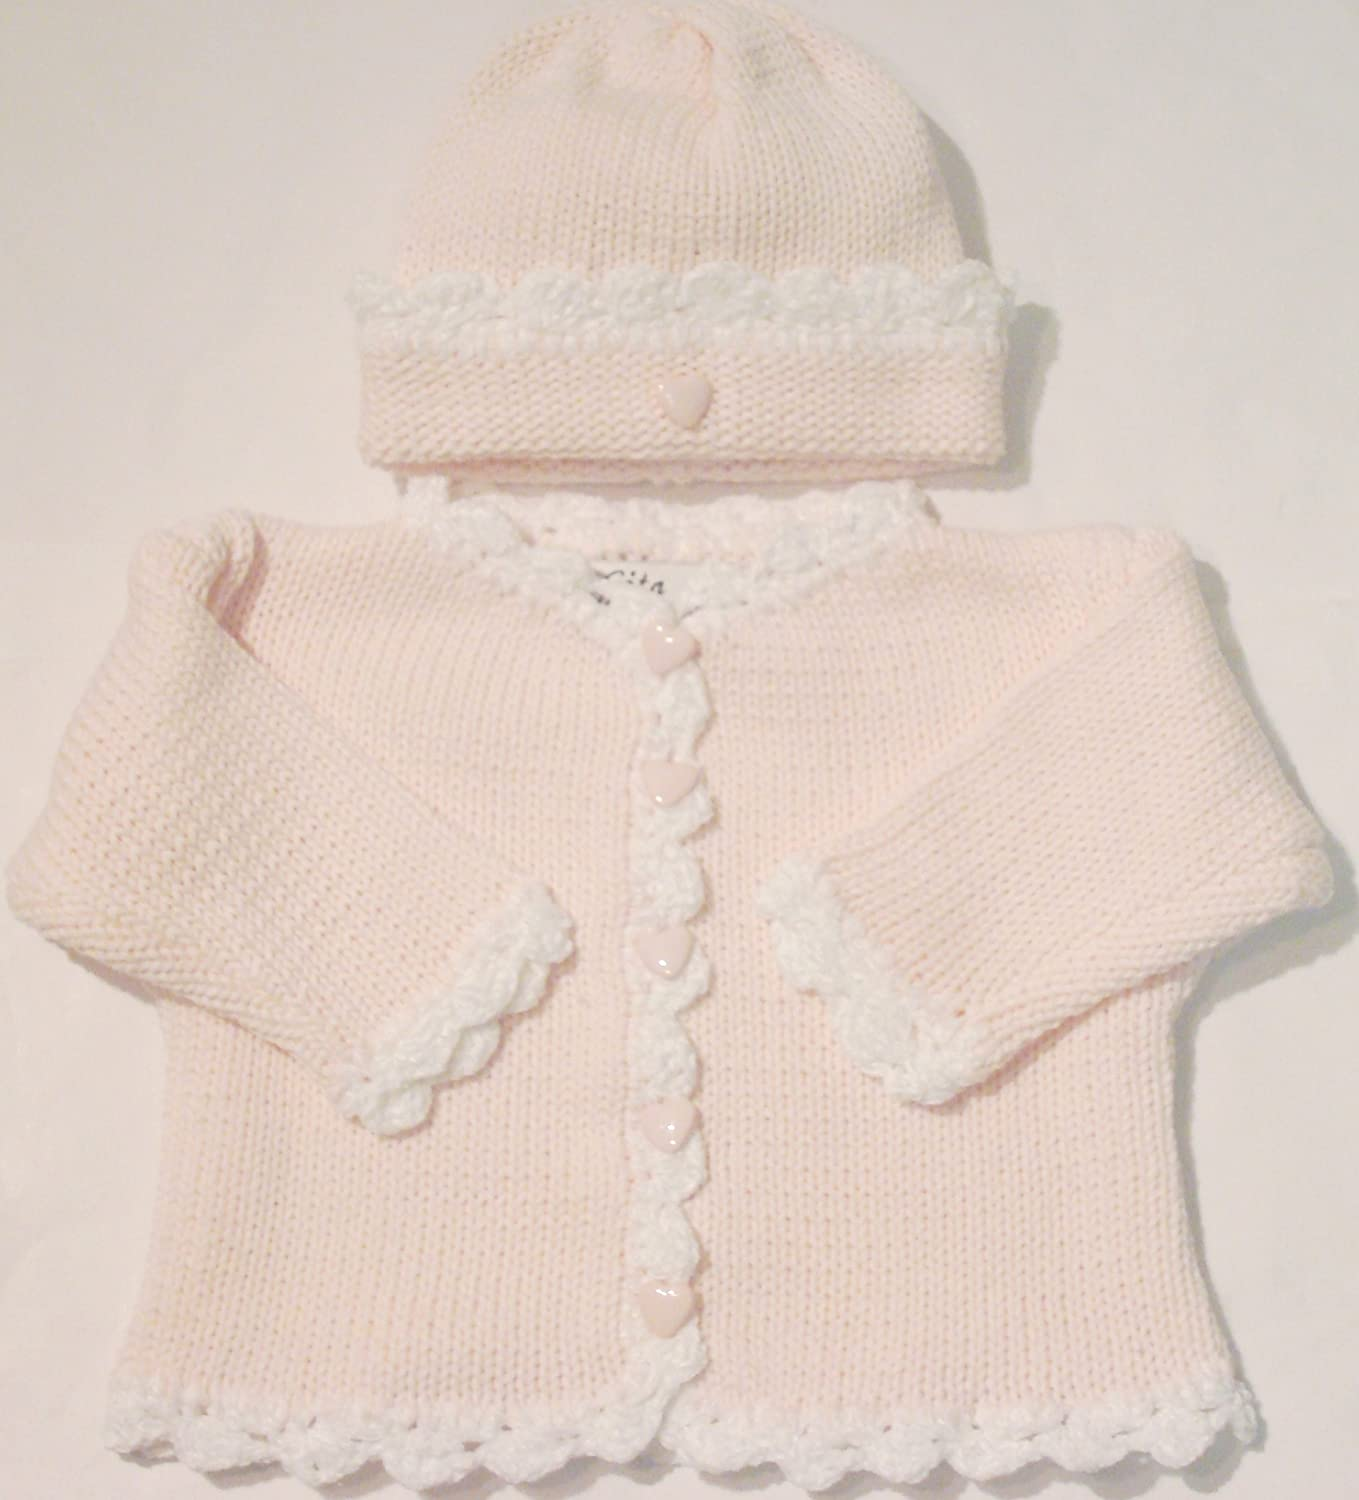 age 6-9 months pink cardigan set Girls Handknitted Cardigan with Matching Beanie